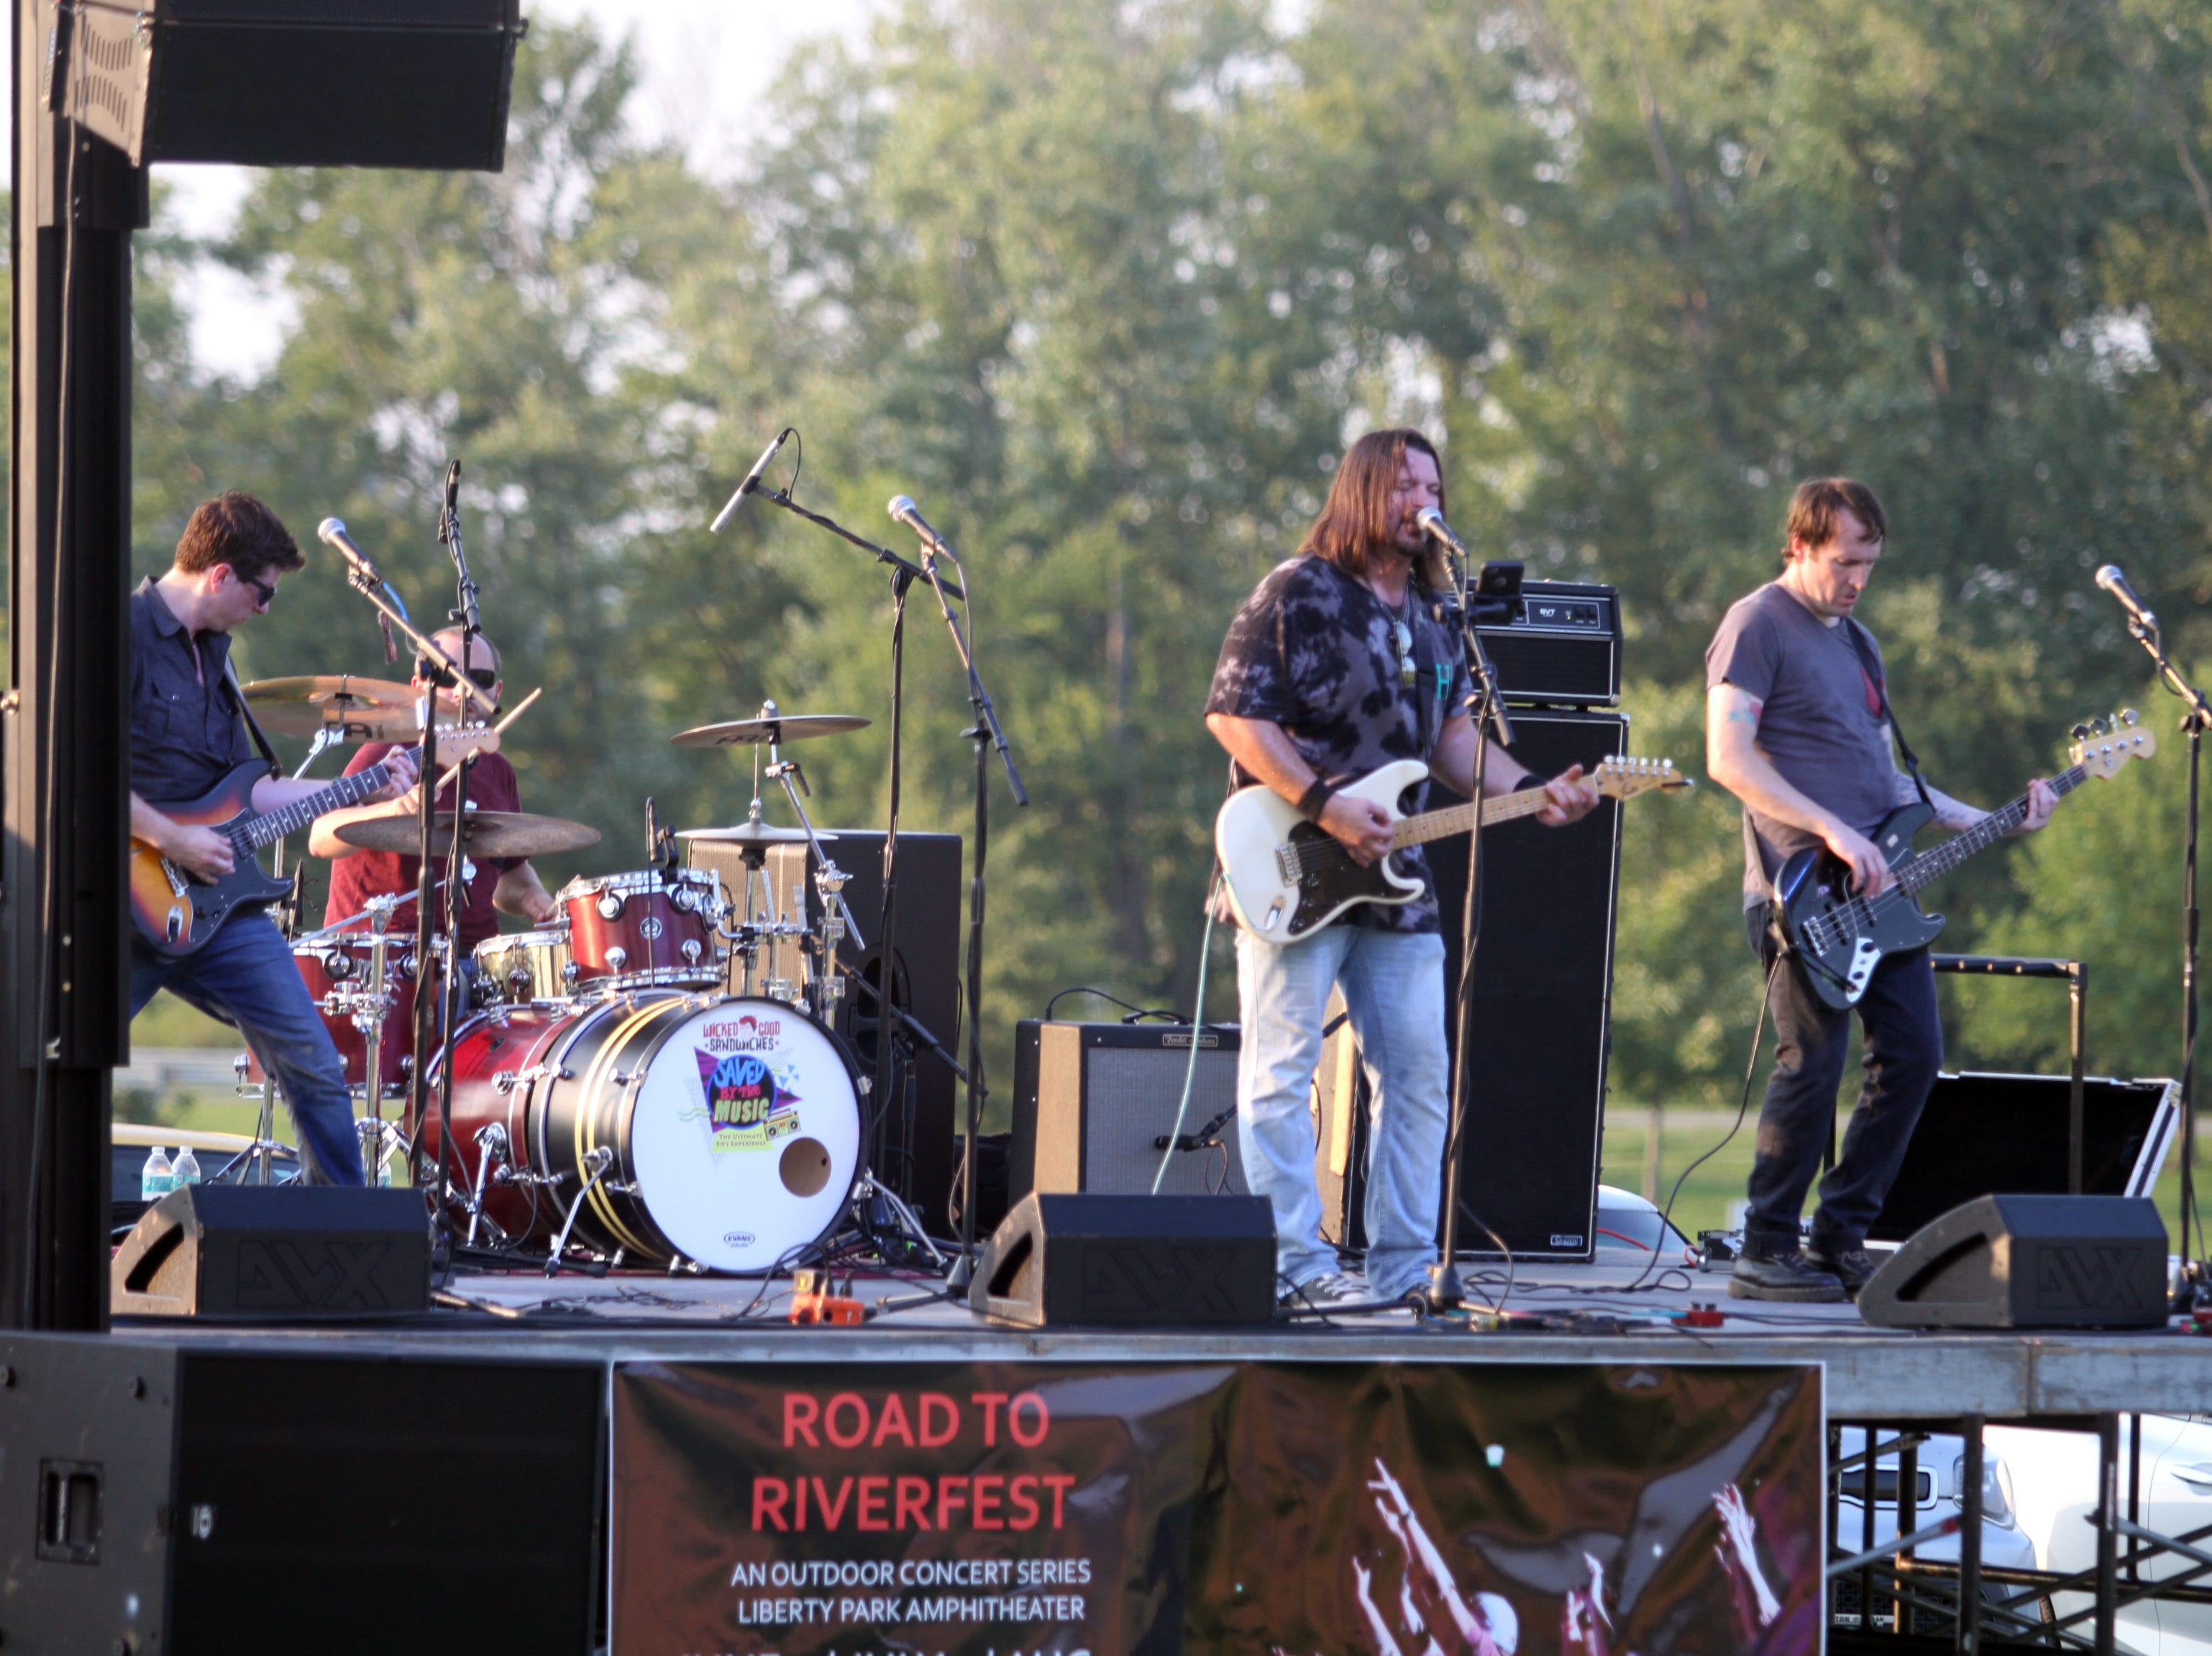 Saved By The Music: The Ultimate 90's Experience performs at Saturday's Road to Riverfest, a Liberty Park summer concert series event.